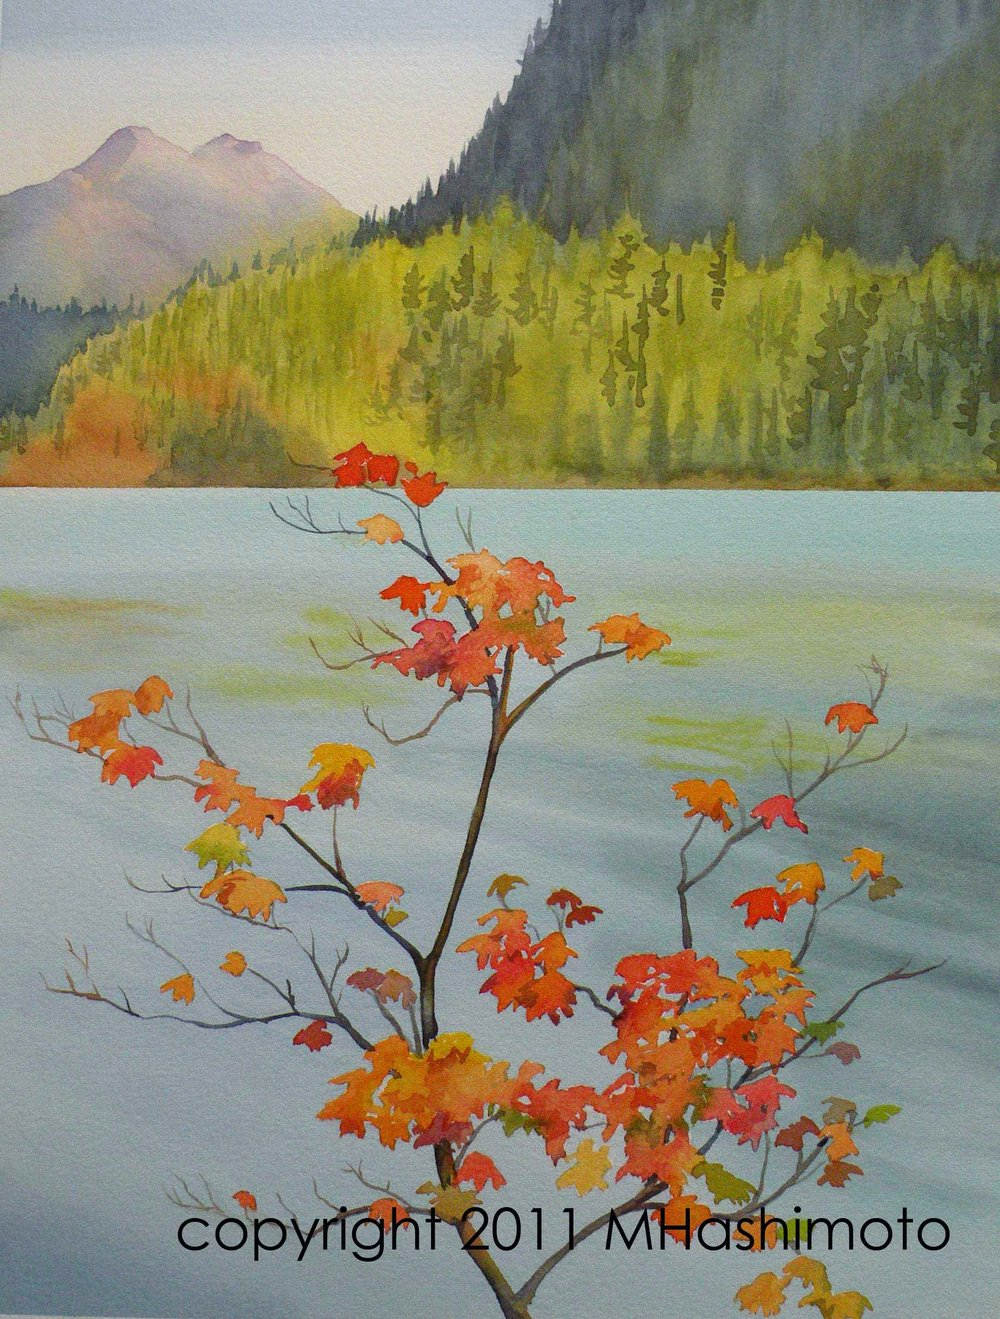 Vine Maple, Diablo Lake - Giclee Print $75